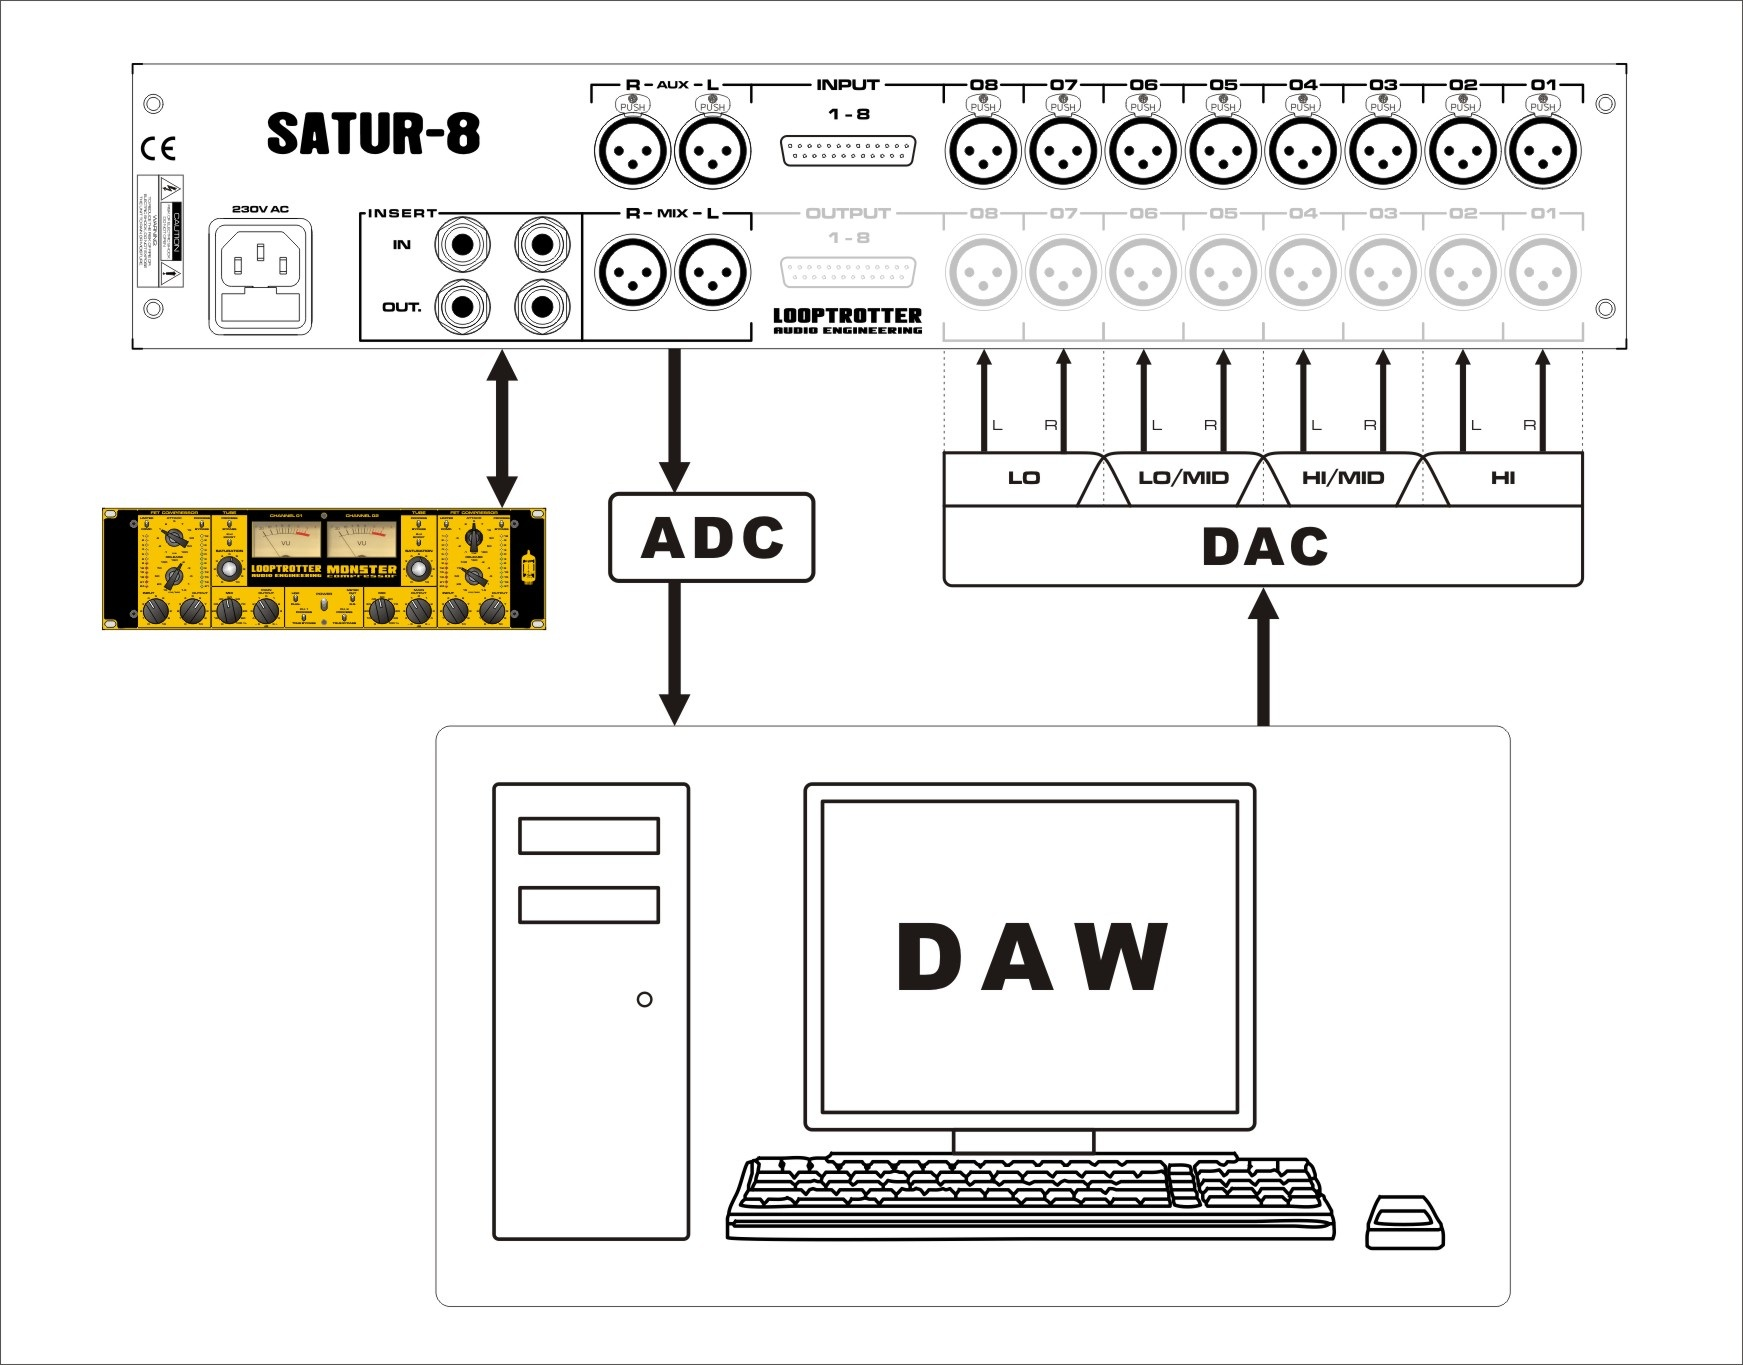 Looptrotter SATUR-8 (8ch summing mixer with saturation